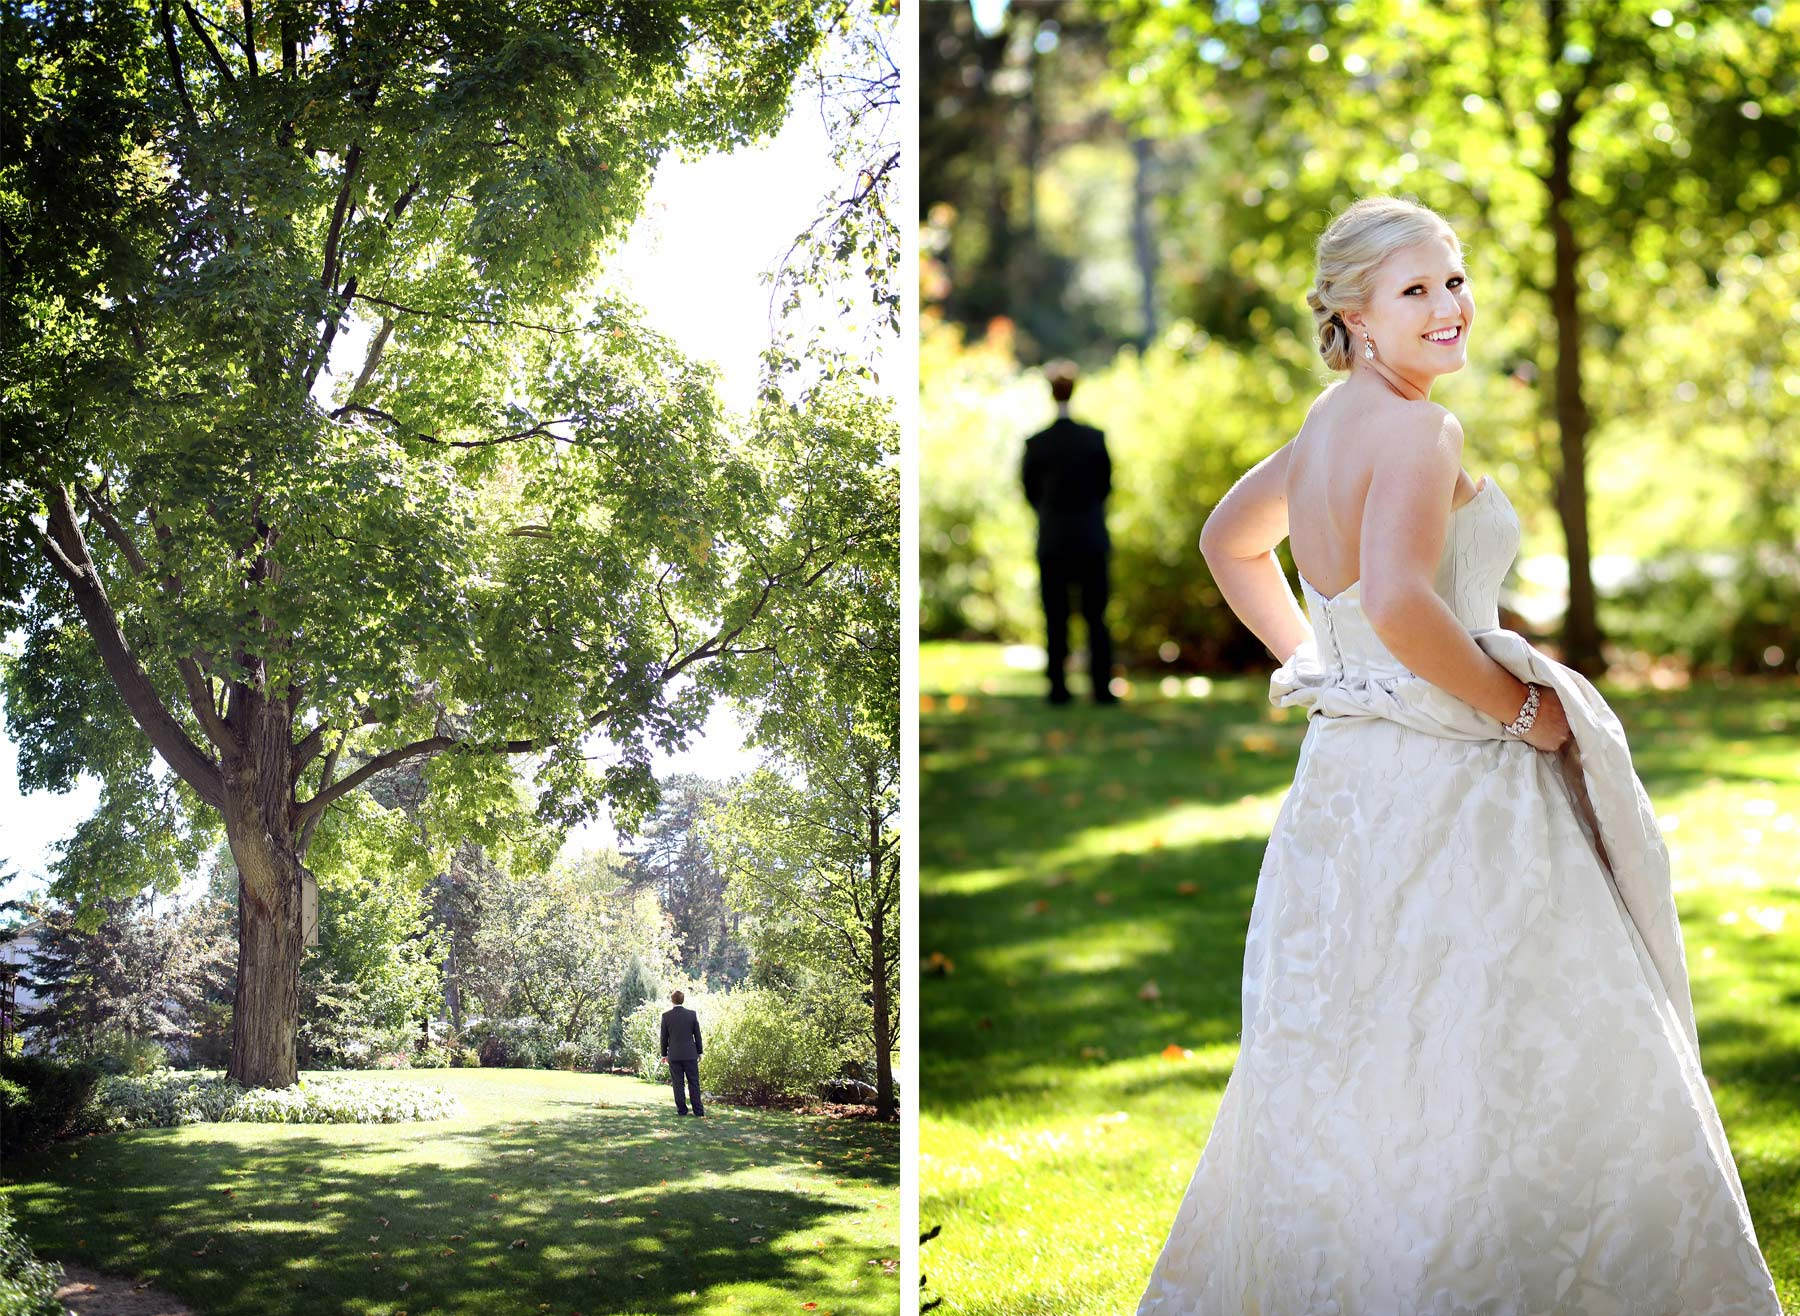 02-Minneapolis-Minnesota-Wedding-Photography-by-Vick-Photography--Calhoun-Beach-Club-First-Look-Kristen-&-Nick.jpg